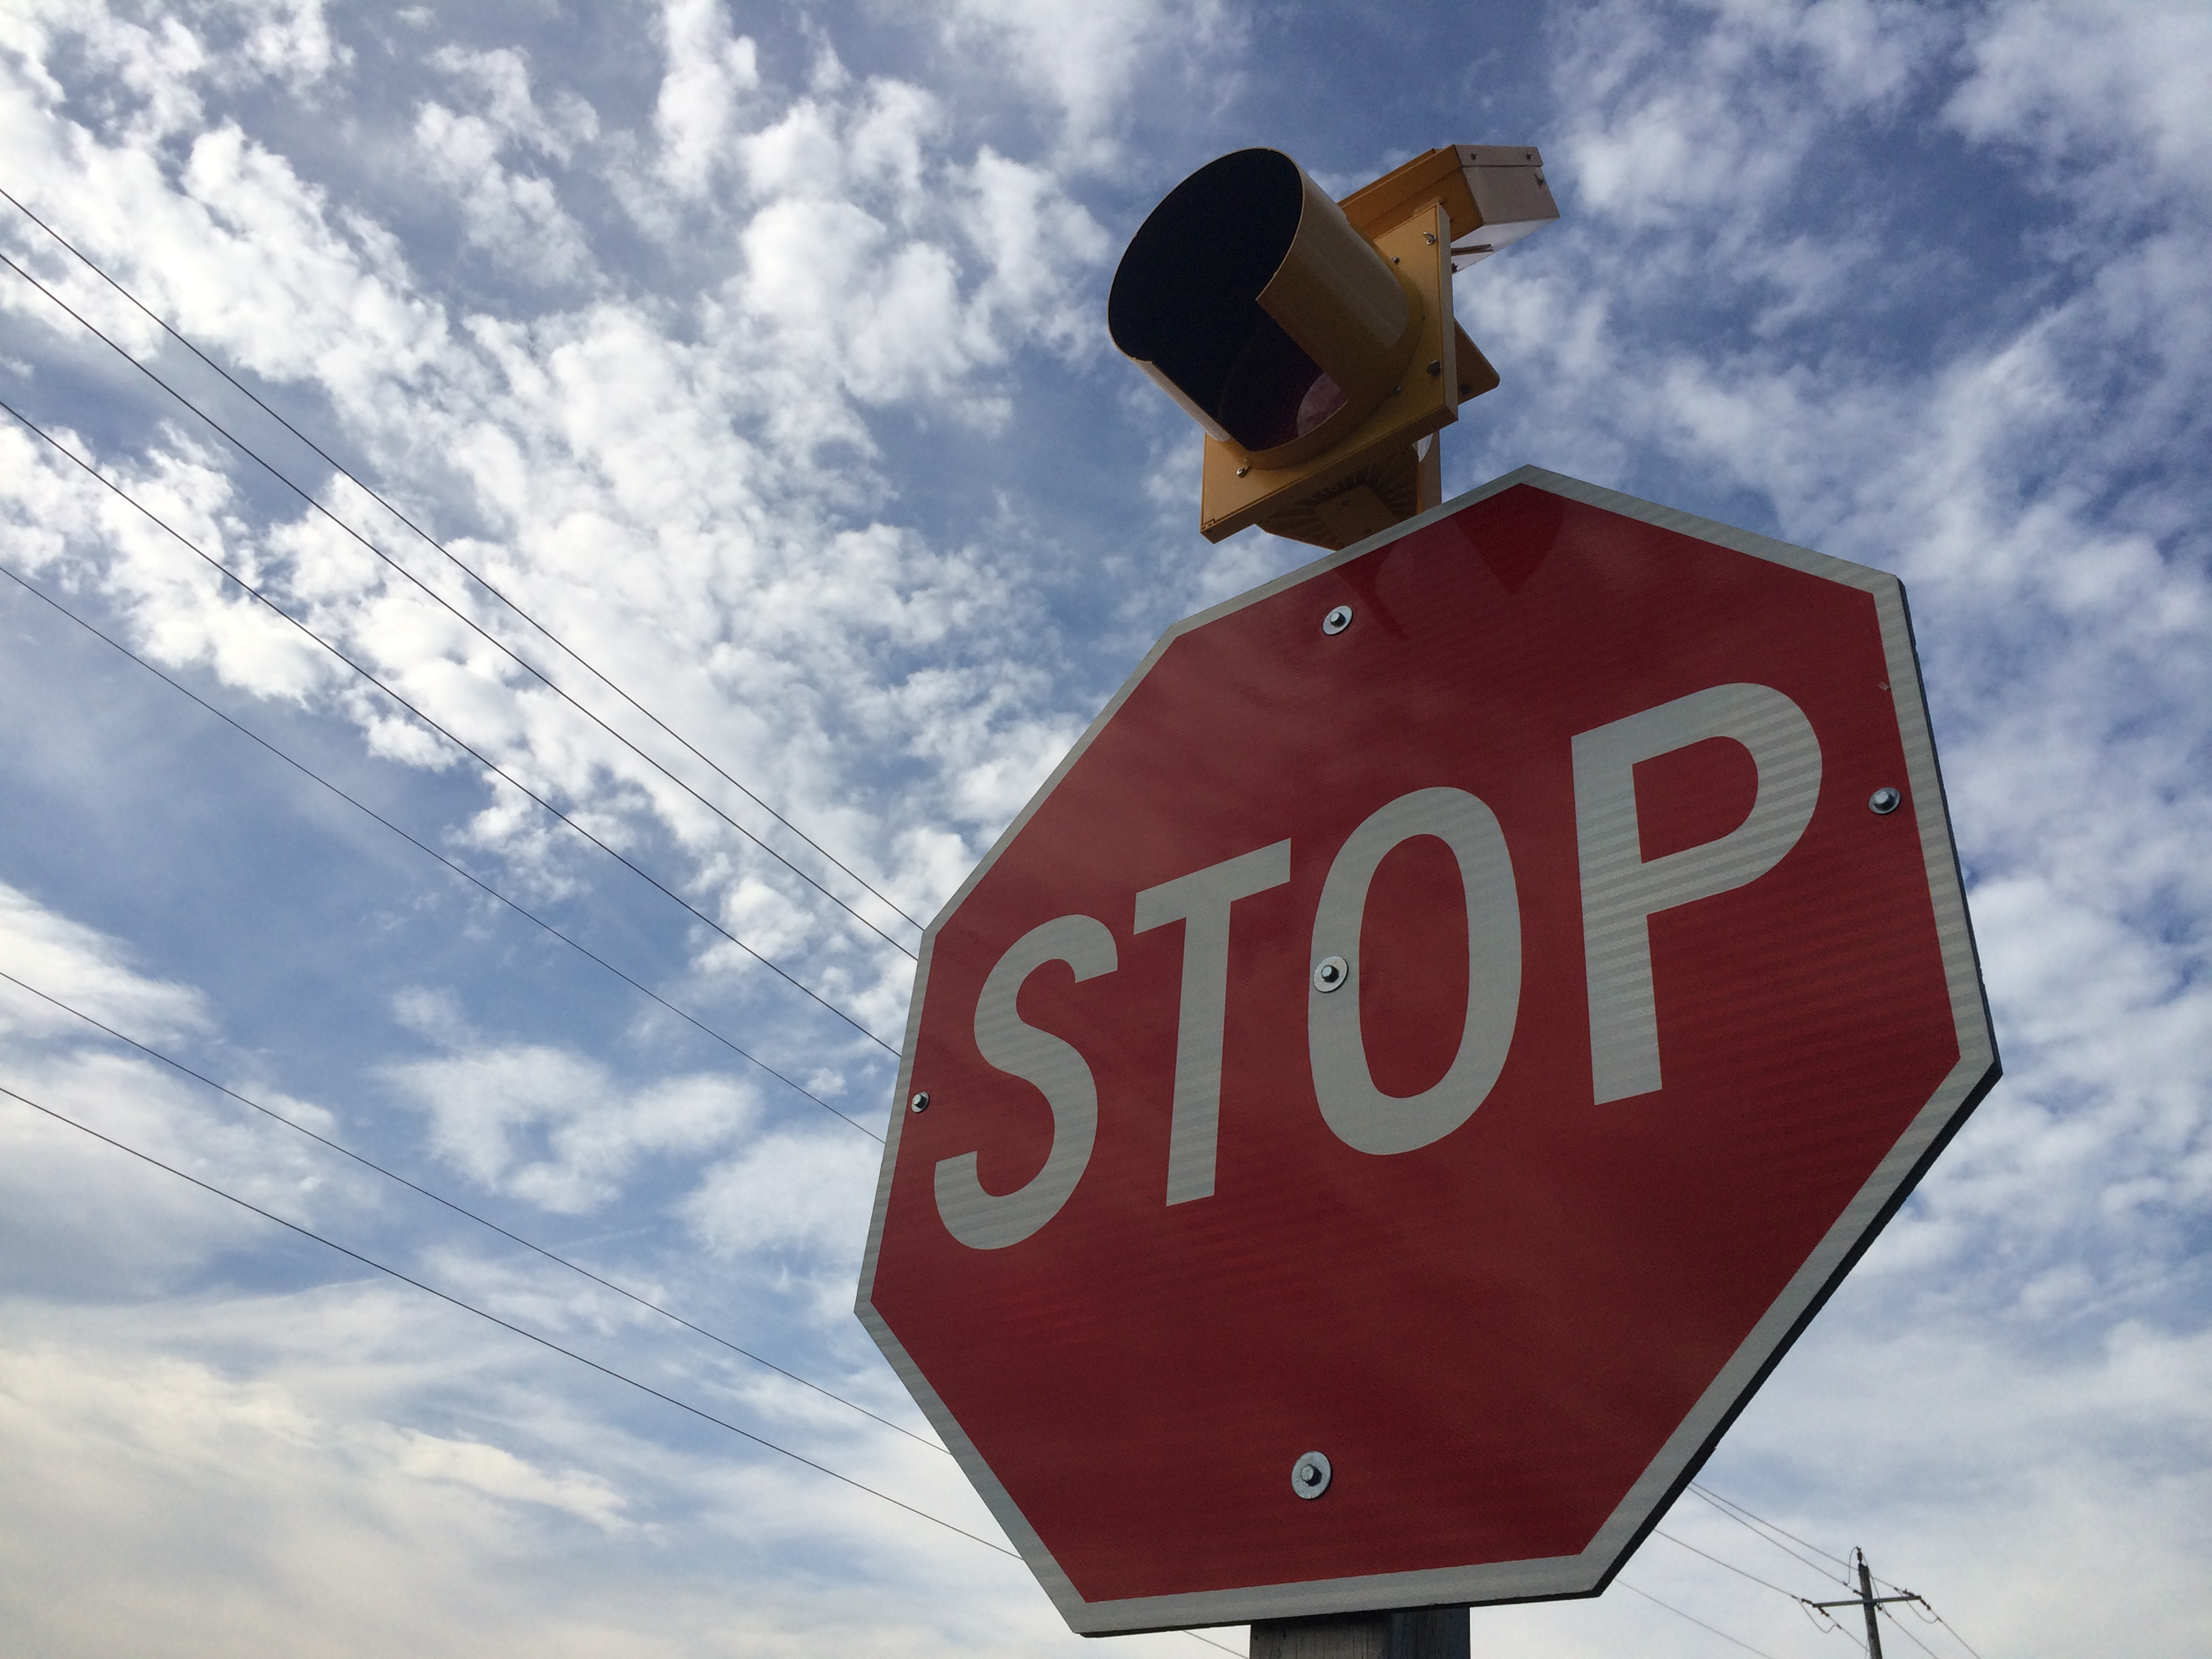 A large stop sign with a flashing red light on top stands on Rochester Townline at County Rd. 46 near Comber. Photo taken September 4, 2014. (Photo by Ricardo Veneza)